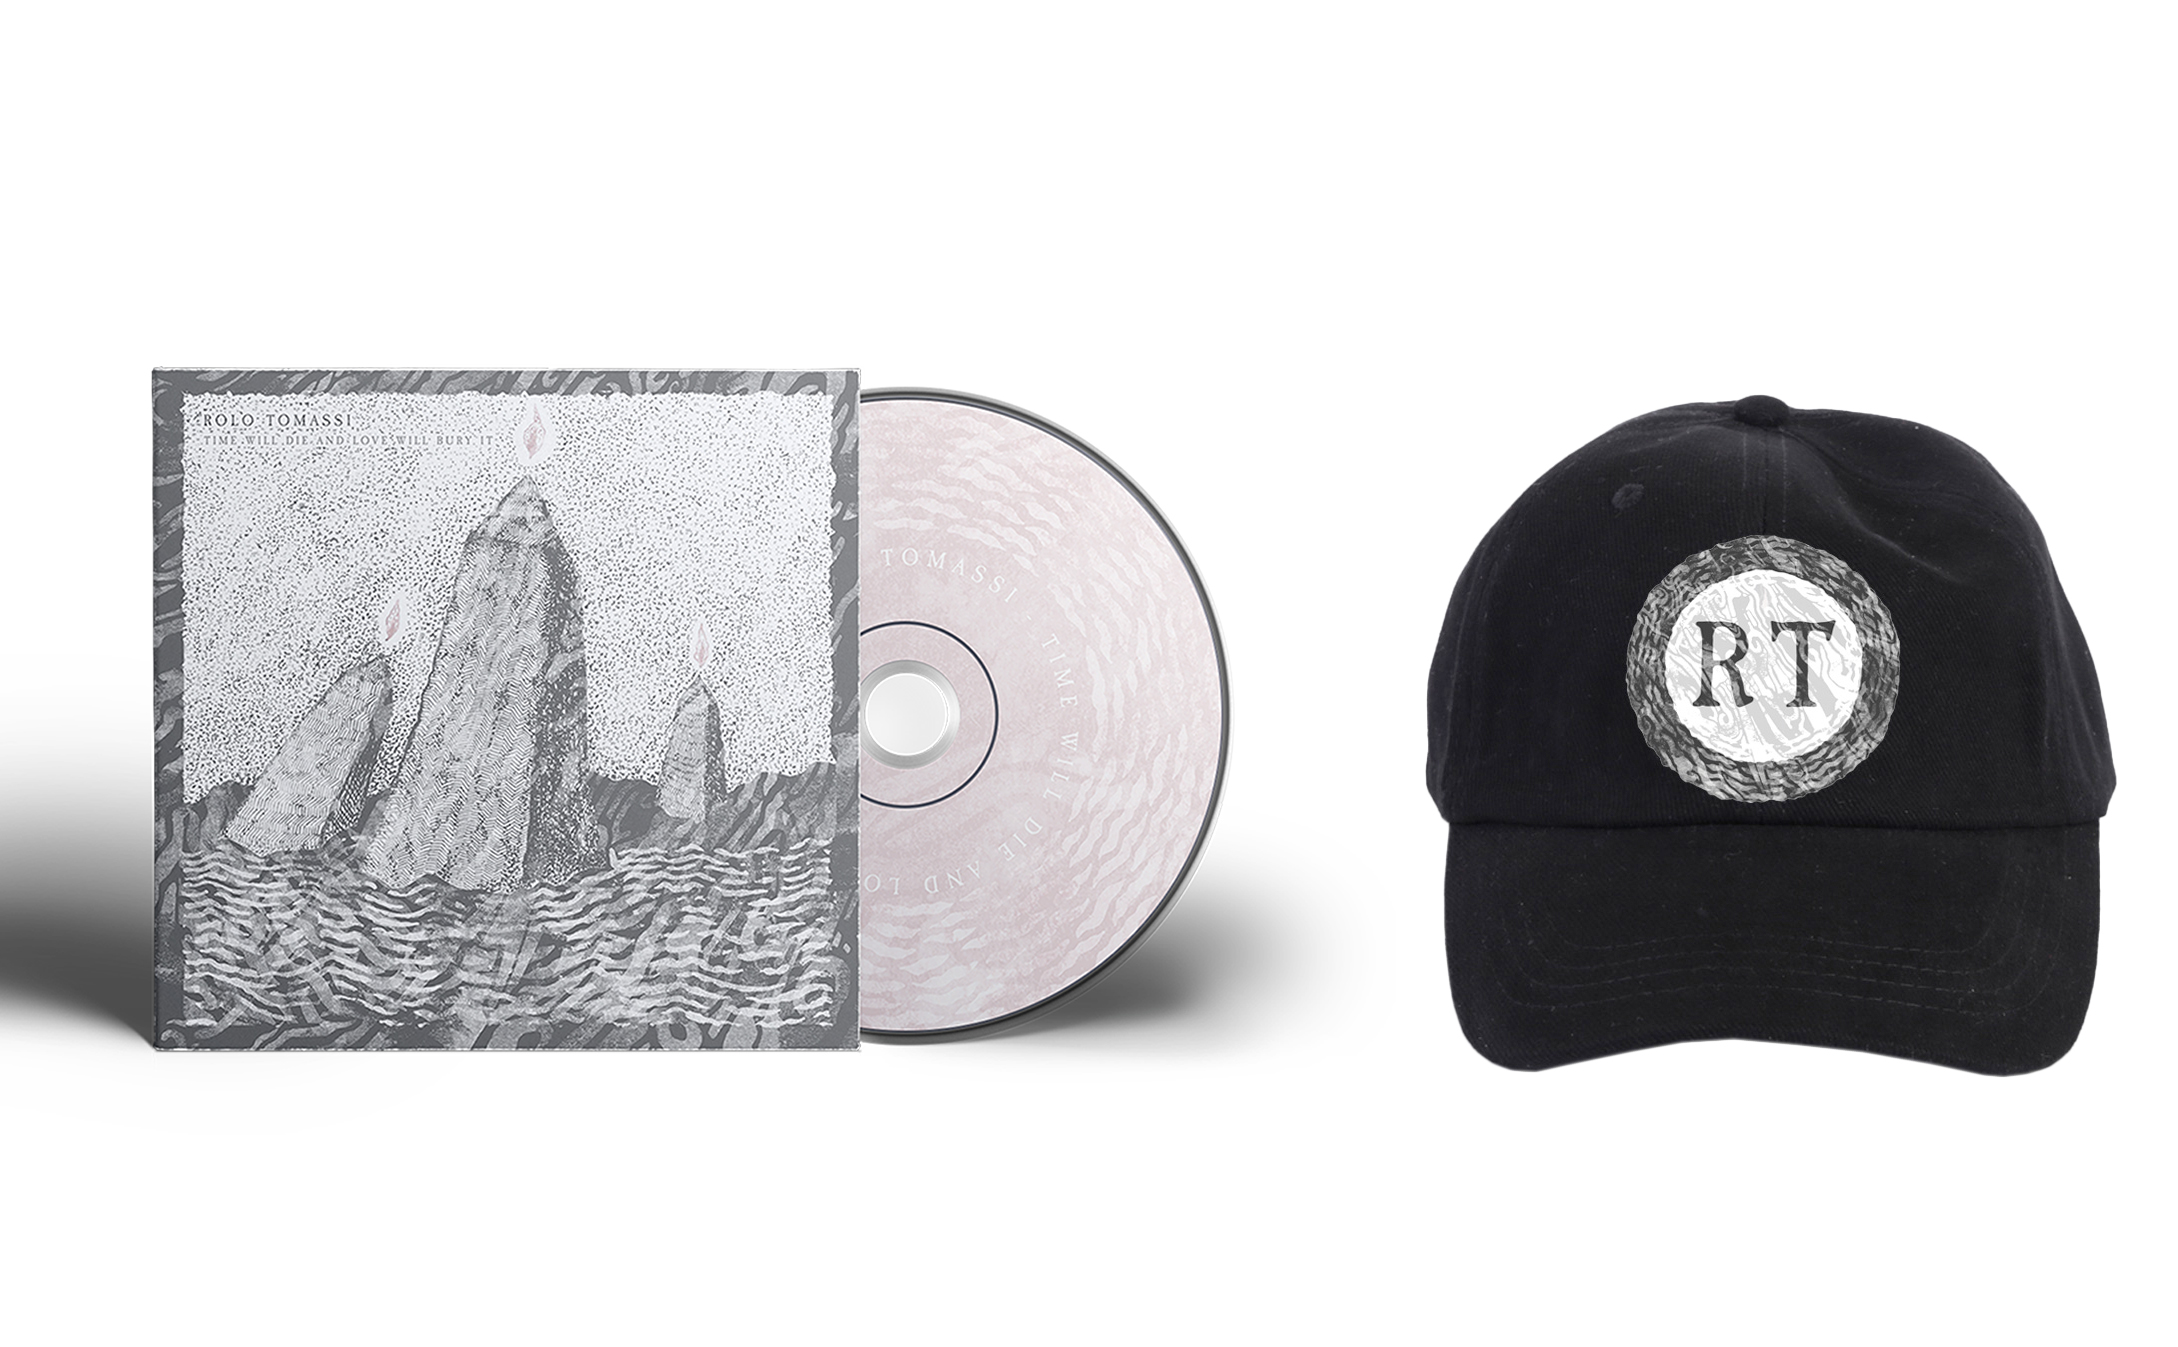 Rolo Tomassi - '...Love Will Bury It' CD + cap PREORDER